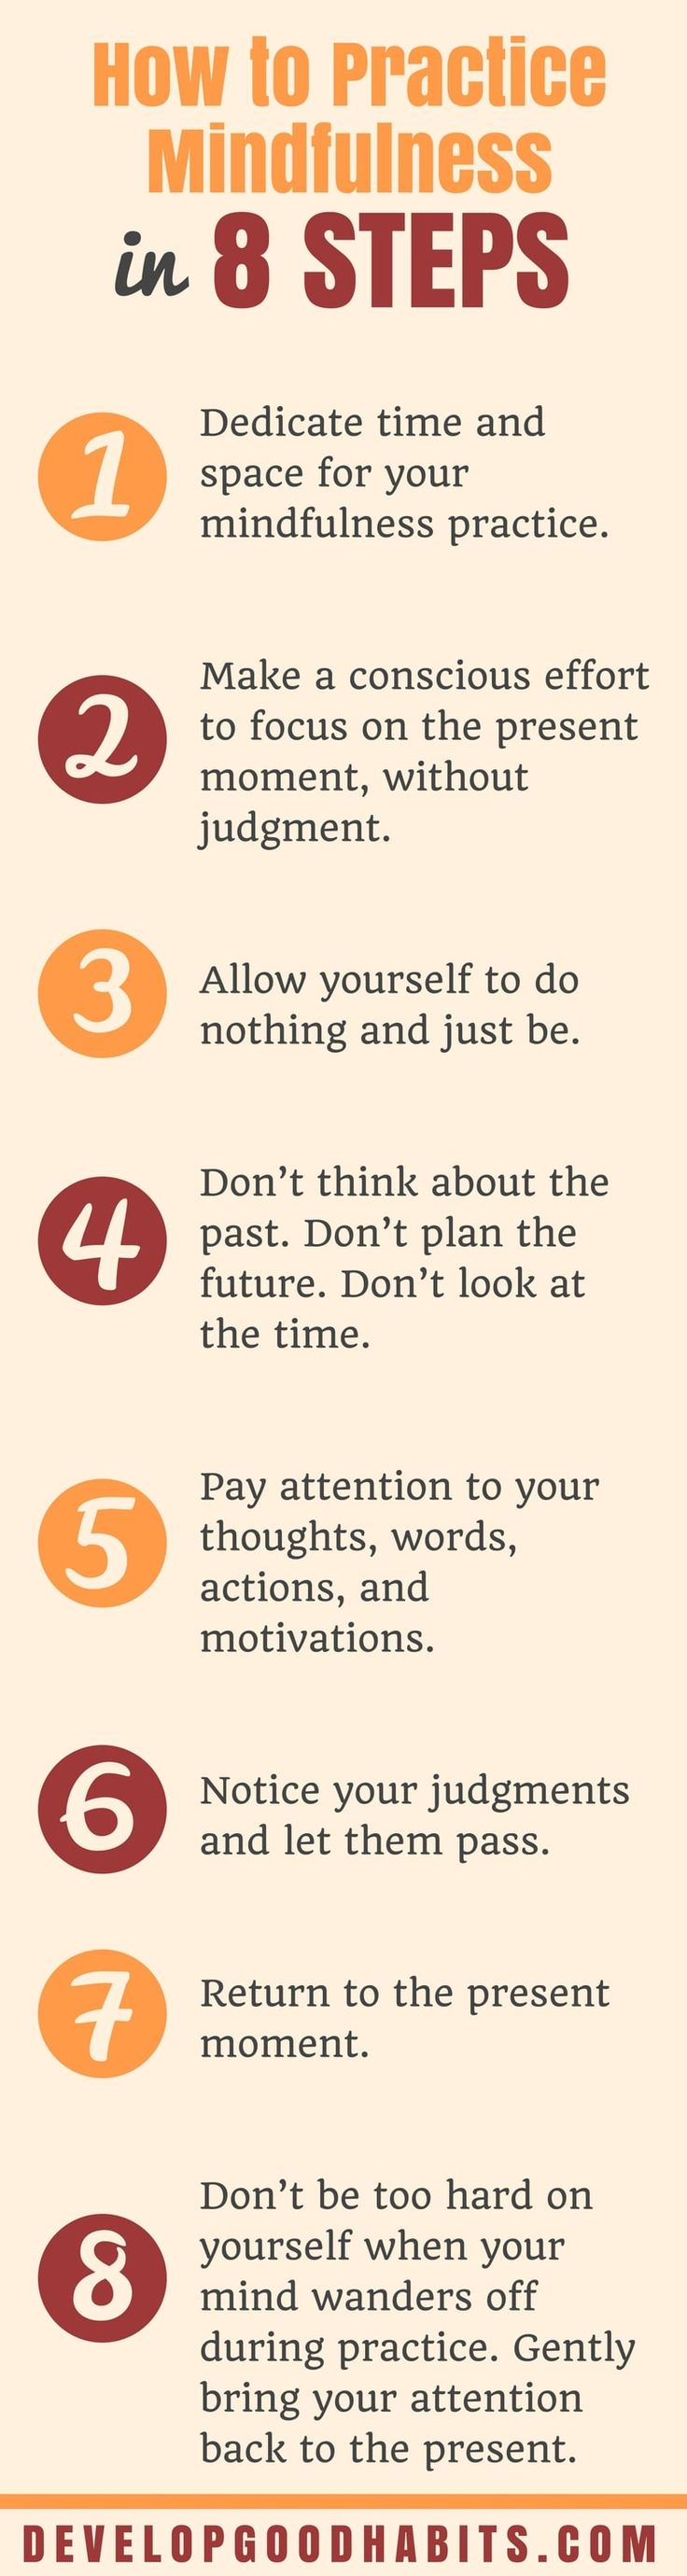 How to Practice Mindfulness 101 | mindfulness training | mindfulness exercises | how to be mindful | personal development | self help | personal growth | self-awareness | being mindful | mindful activities | practice mindfulness #mindset #mindfullness #mindful #personaldevelopment #selfhelp #training #learning #growthhacking #growthmindset #personalgrowth #selfawareness #selfcare